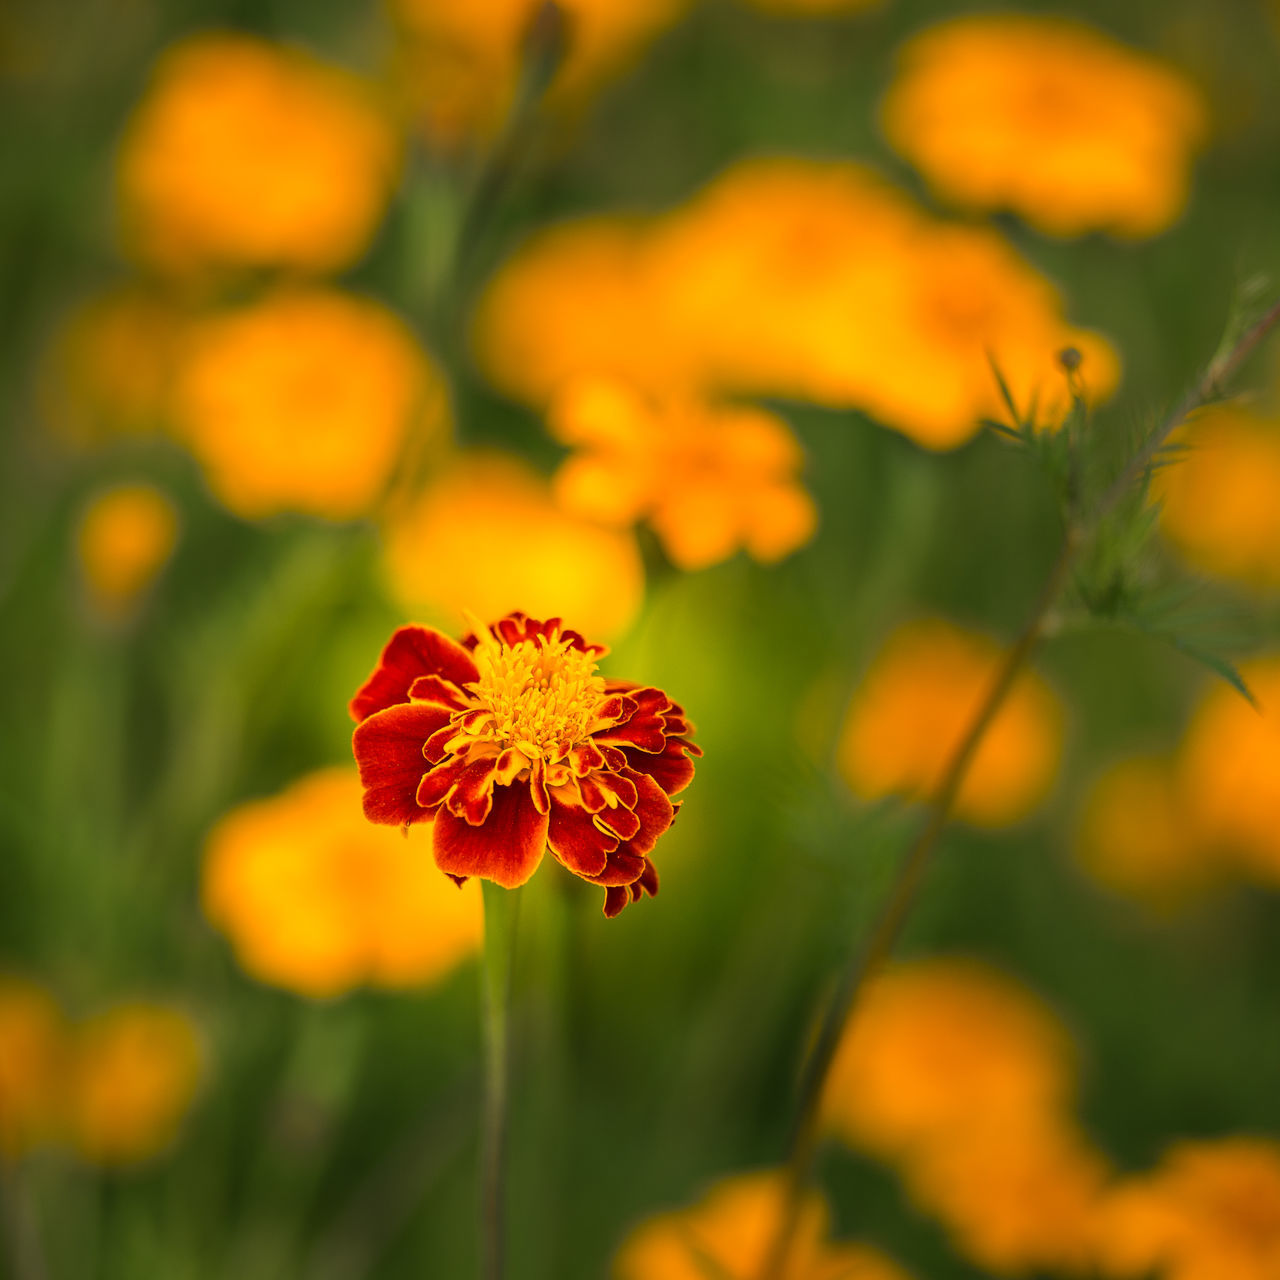 flower, growth, petal, beauty in nature, nature, flower head, freshness, orange color, plant, fragility, blooming, yellow, focus on foreground, no people, close-up, day, outdoors, zinnia